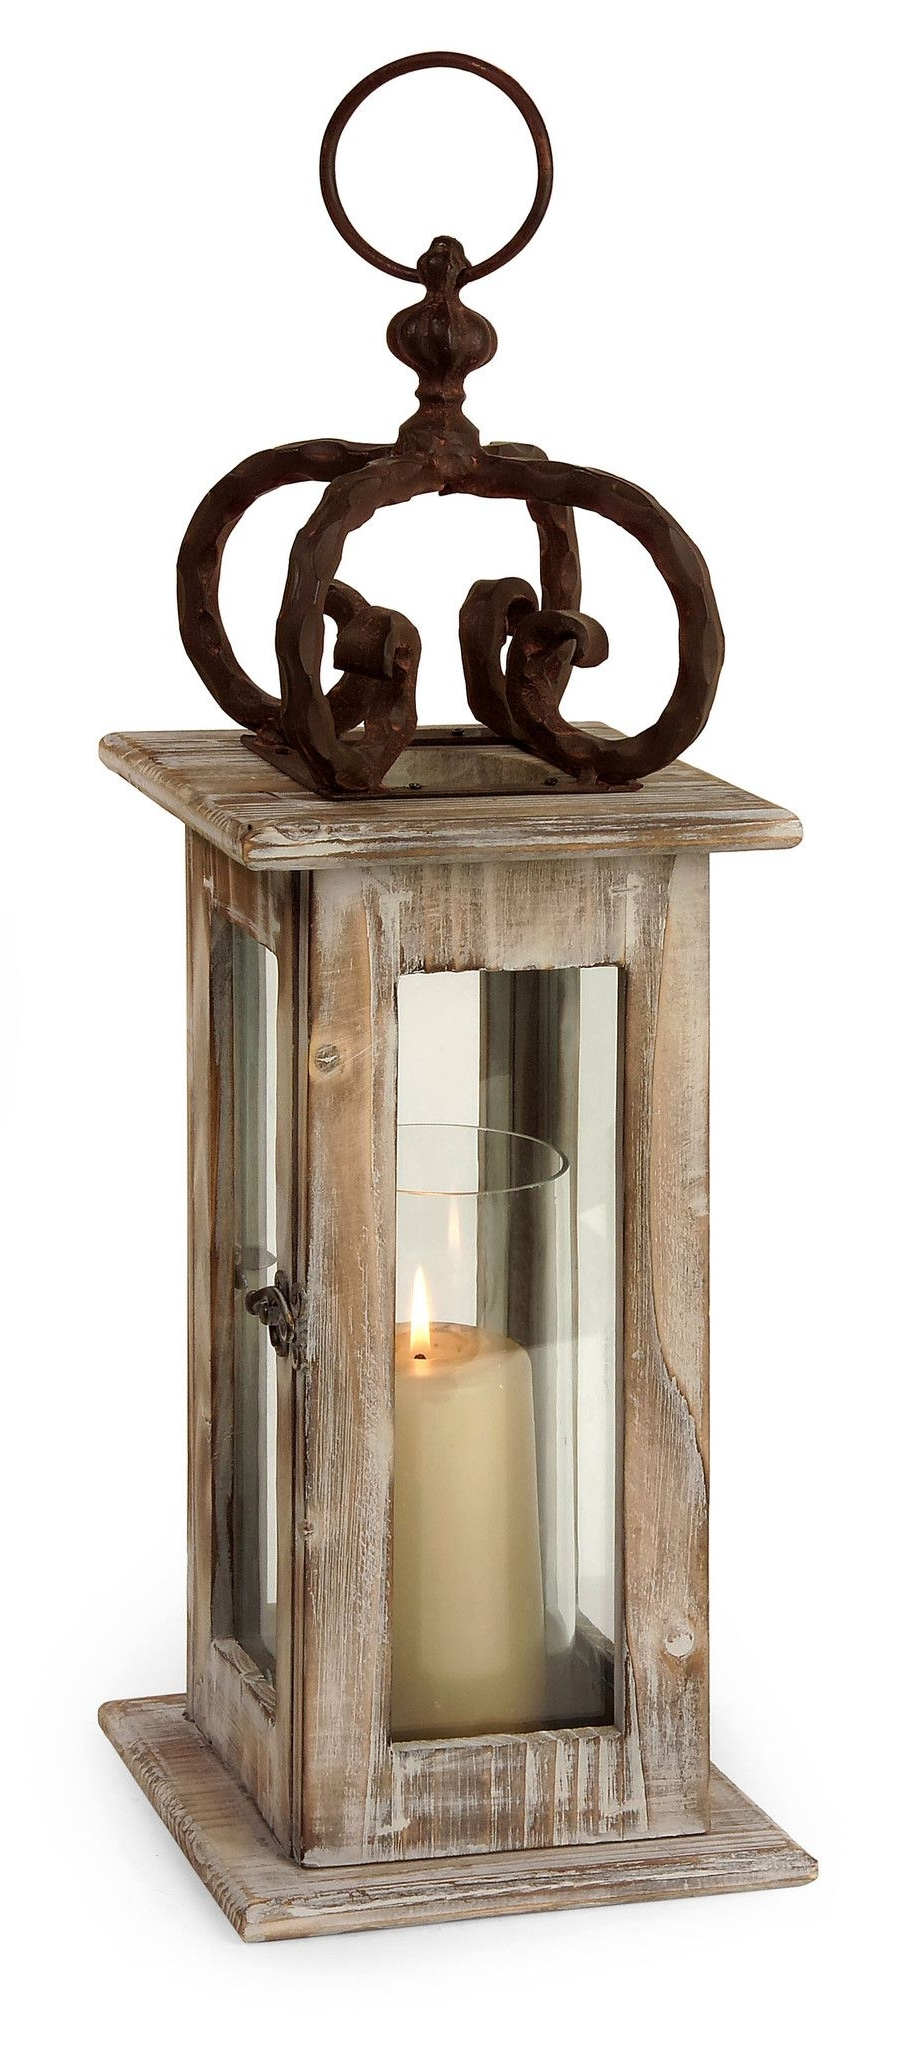 Outdoor Iron Lanterns Pertaining To Most Recent Scandinavian Washed Natural Wood Lantern With Wrought Iron (View 14 of 20)